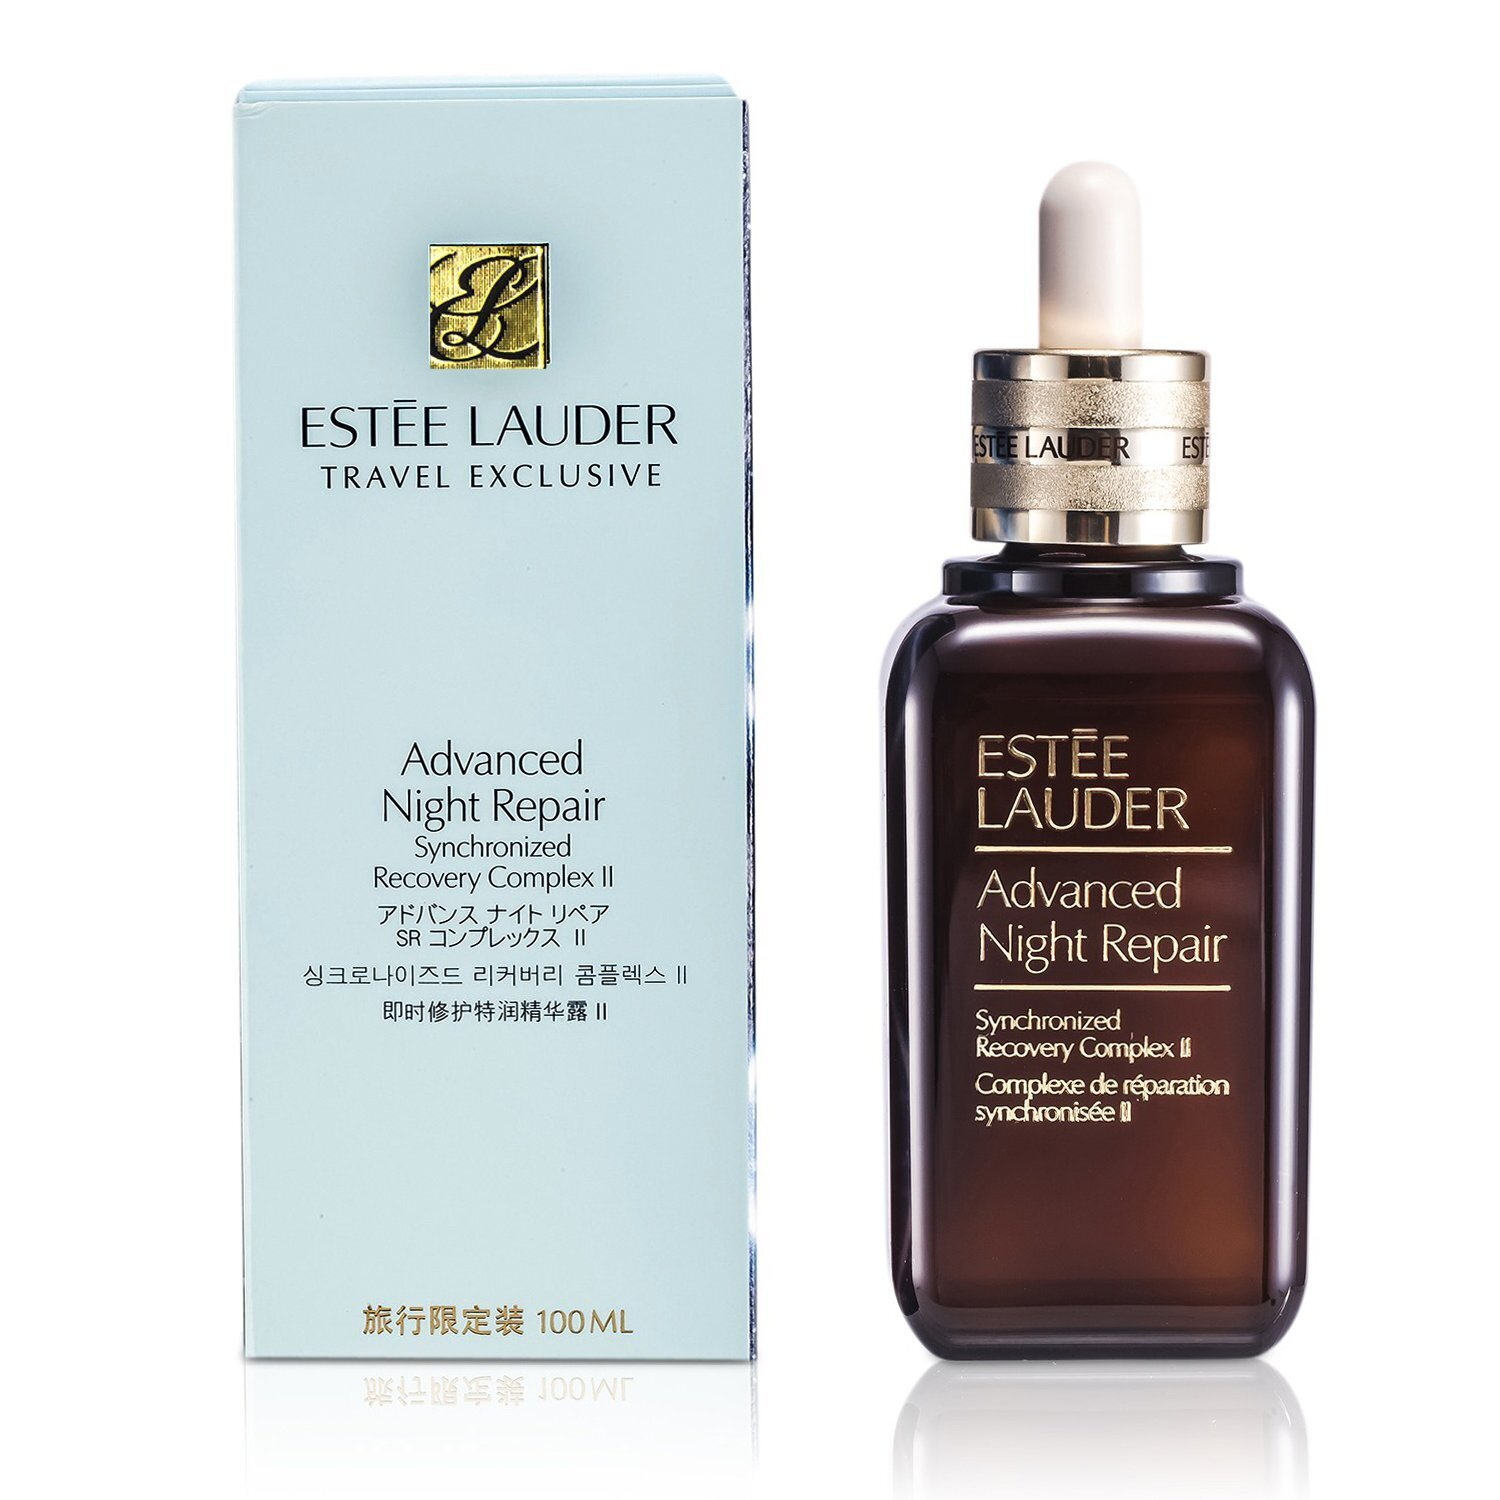 Estee-Lauder-Advanced-Night-Repair-Synchronized-Recovery-Complex-II-30ml-1oz thumbnail 6